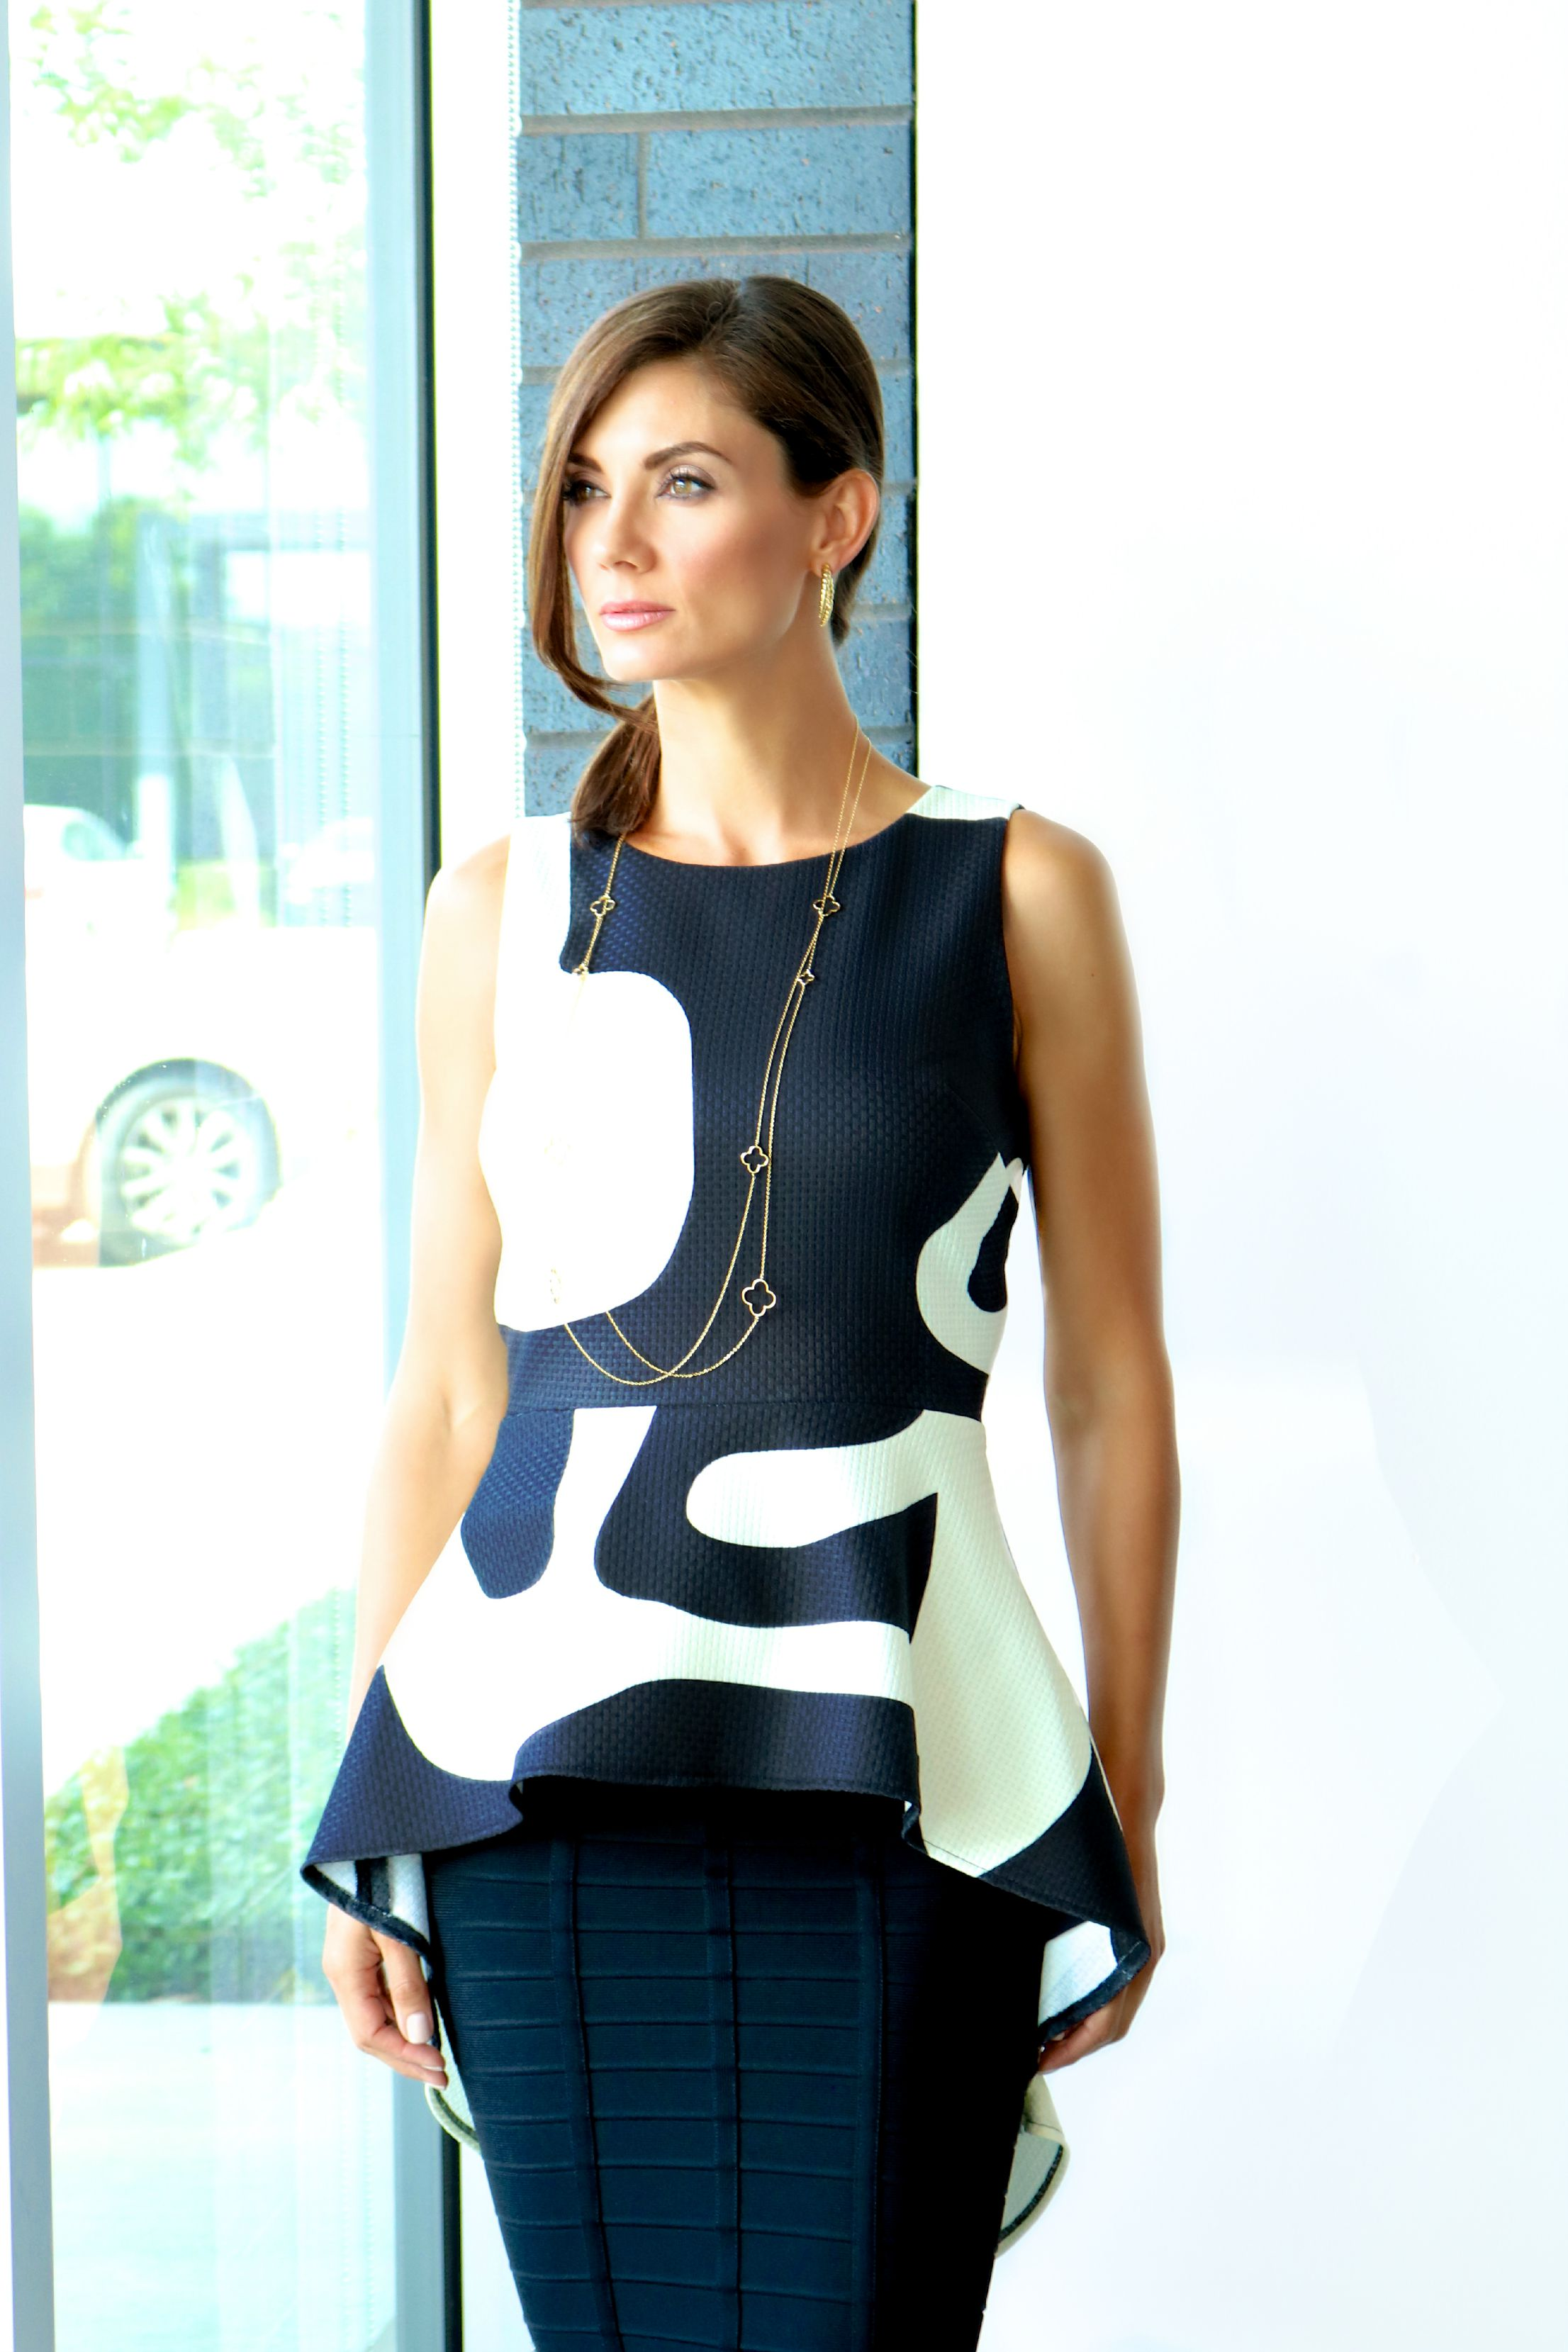 The James Top from Troubadour  in Encounter is Available In Store and  Online . Herve Sia Skirt Available In Store Only.